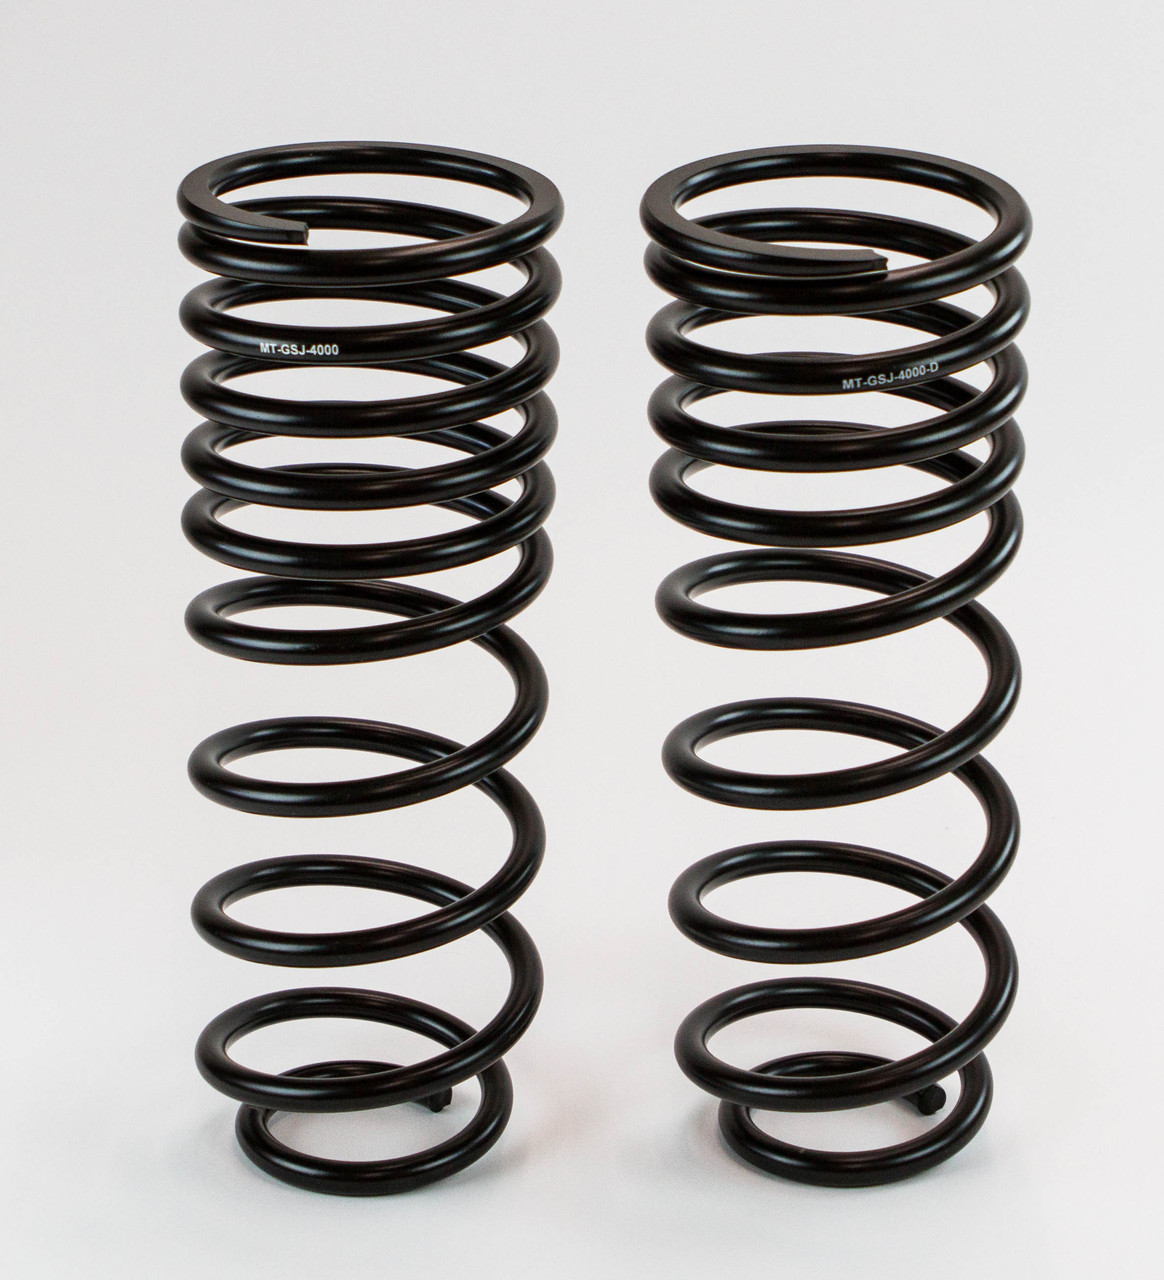 Metal-Tech 4Runner Rear Long Travel Coil Springs - Medium